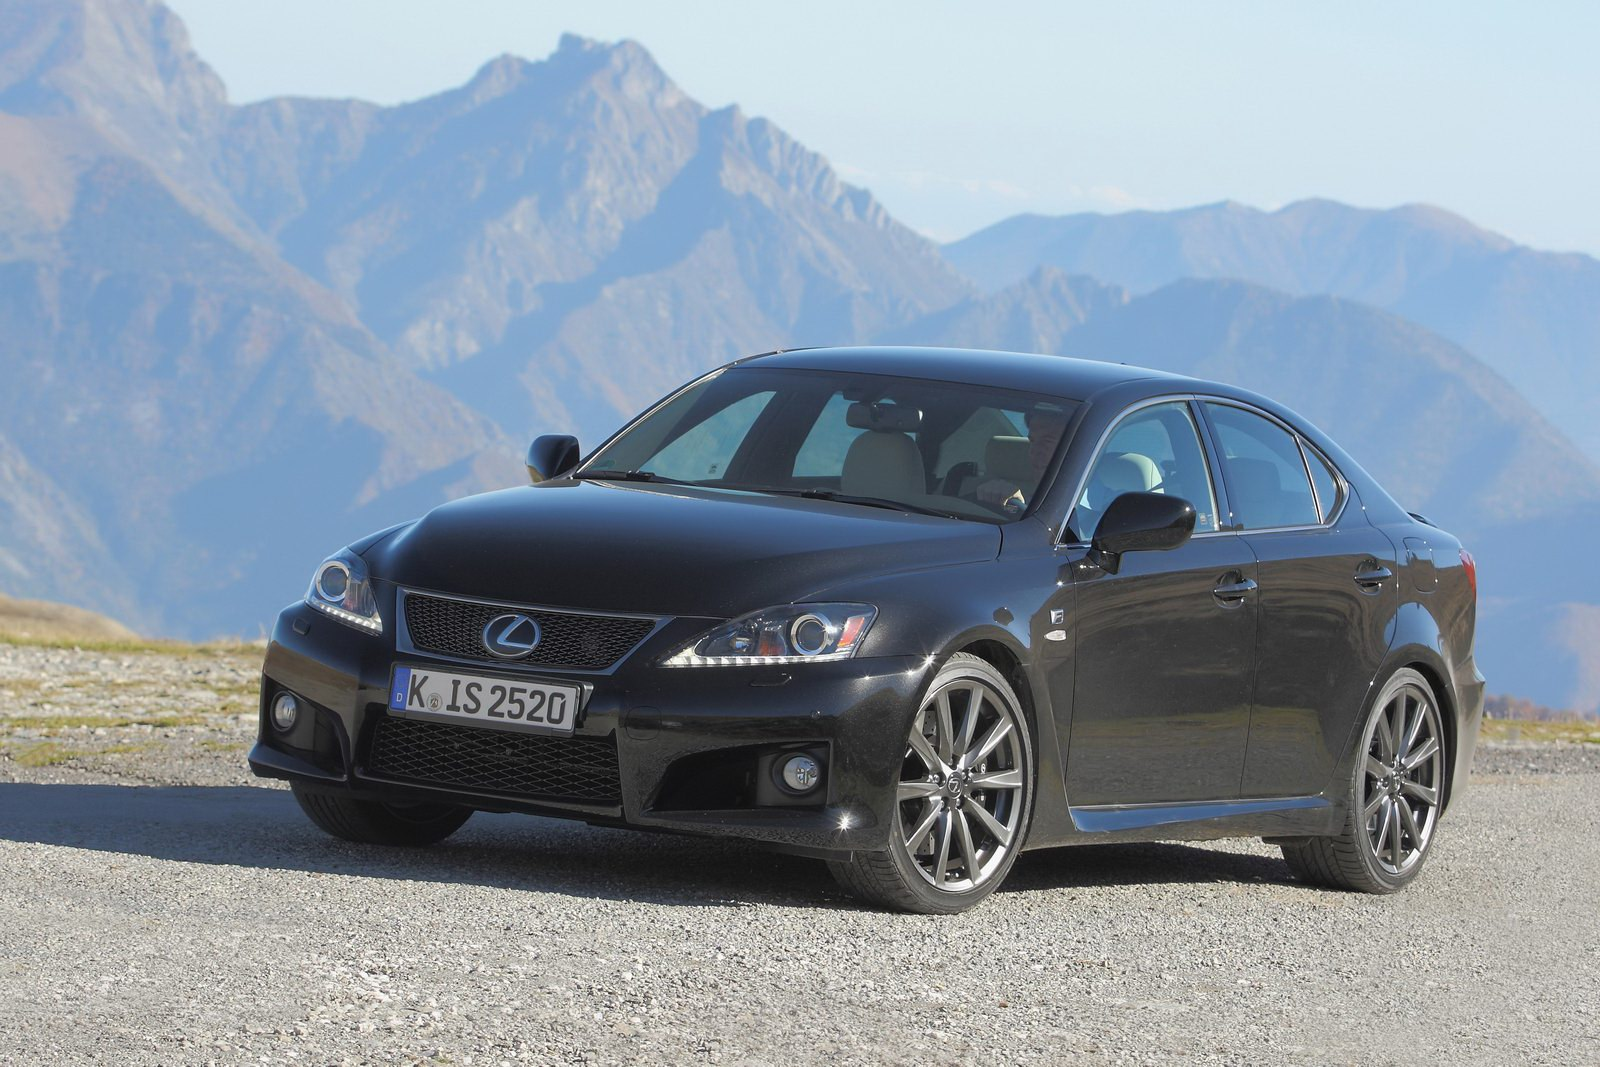 2011 Lexus IS-F